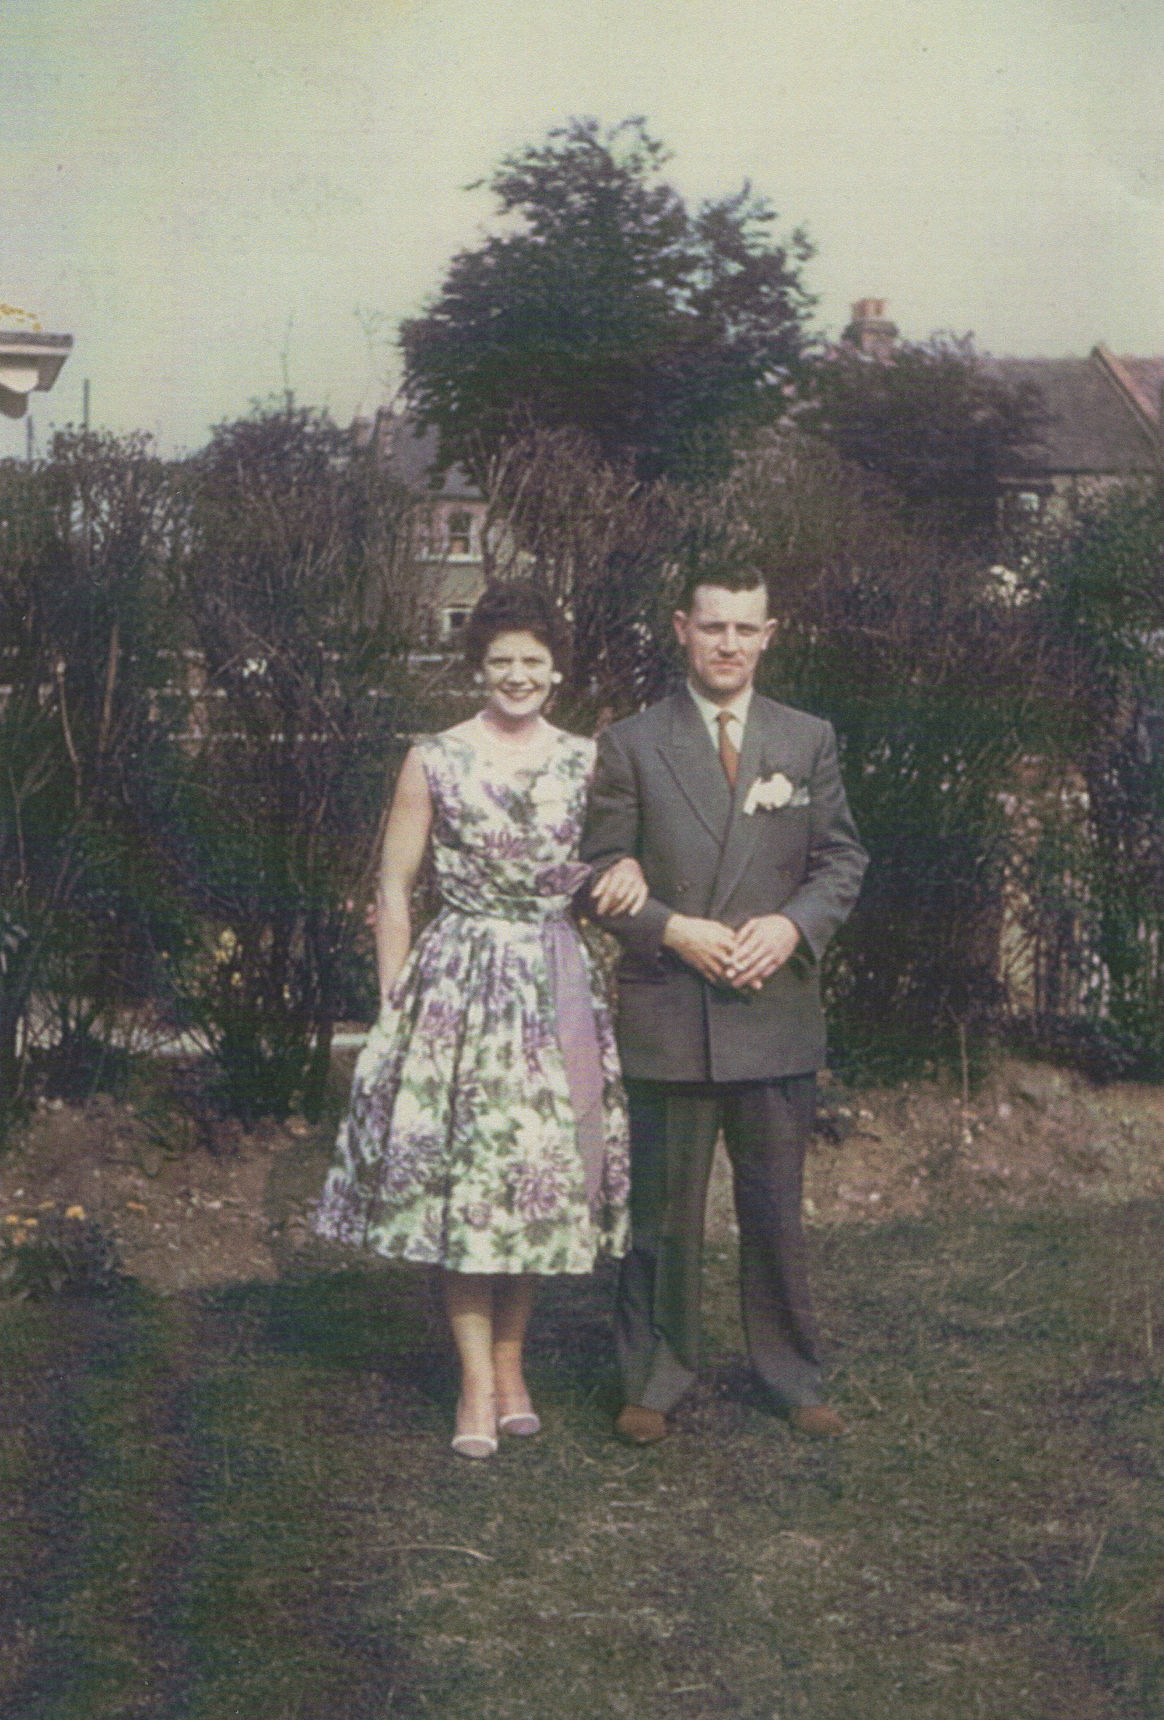 My brother Alex and his wife Joyce photographed at their wedding in Gravesend, Kent.